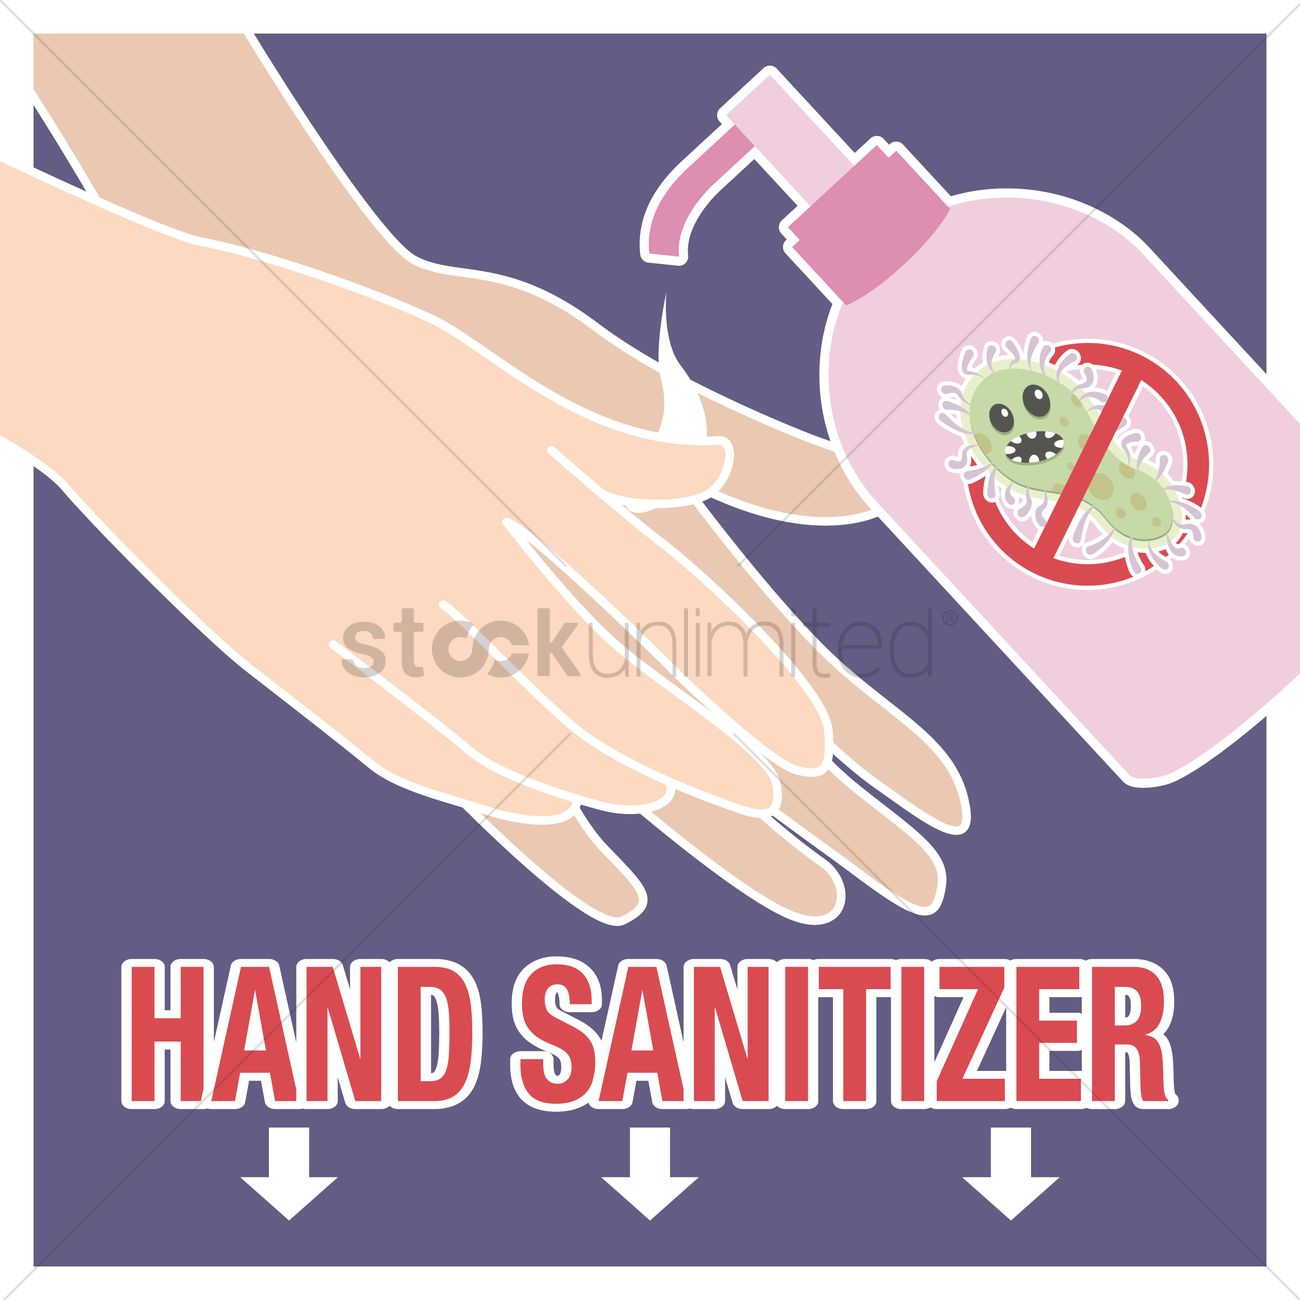 hand sanitizer poster vector image 1244110 stockunlimited